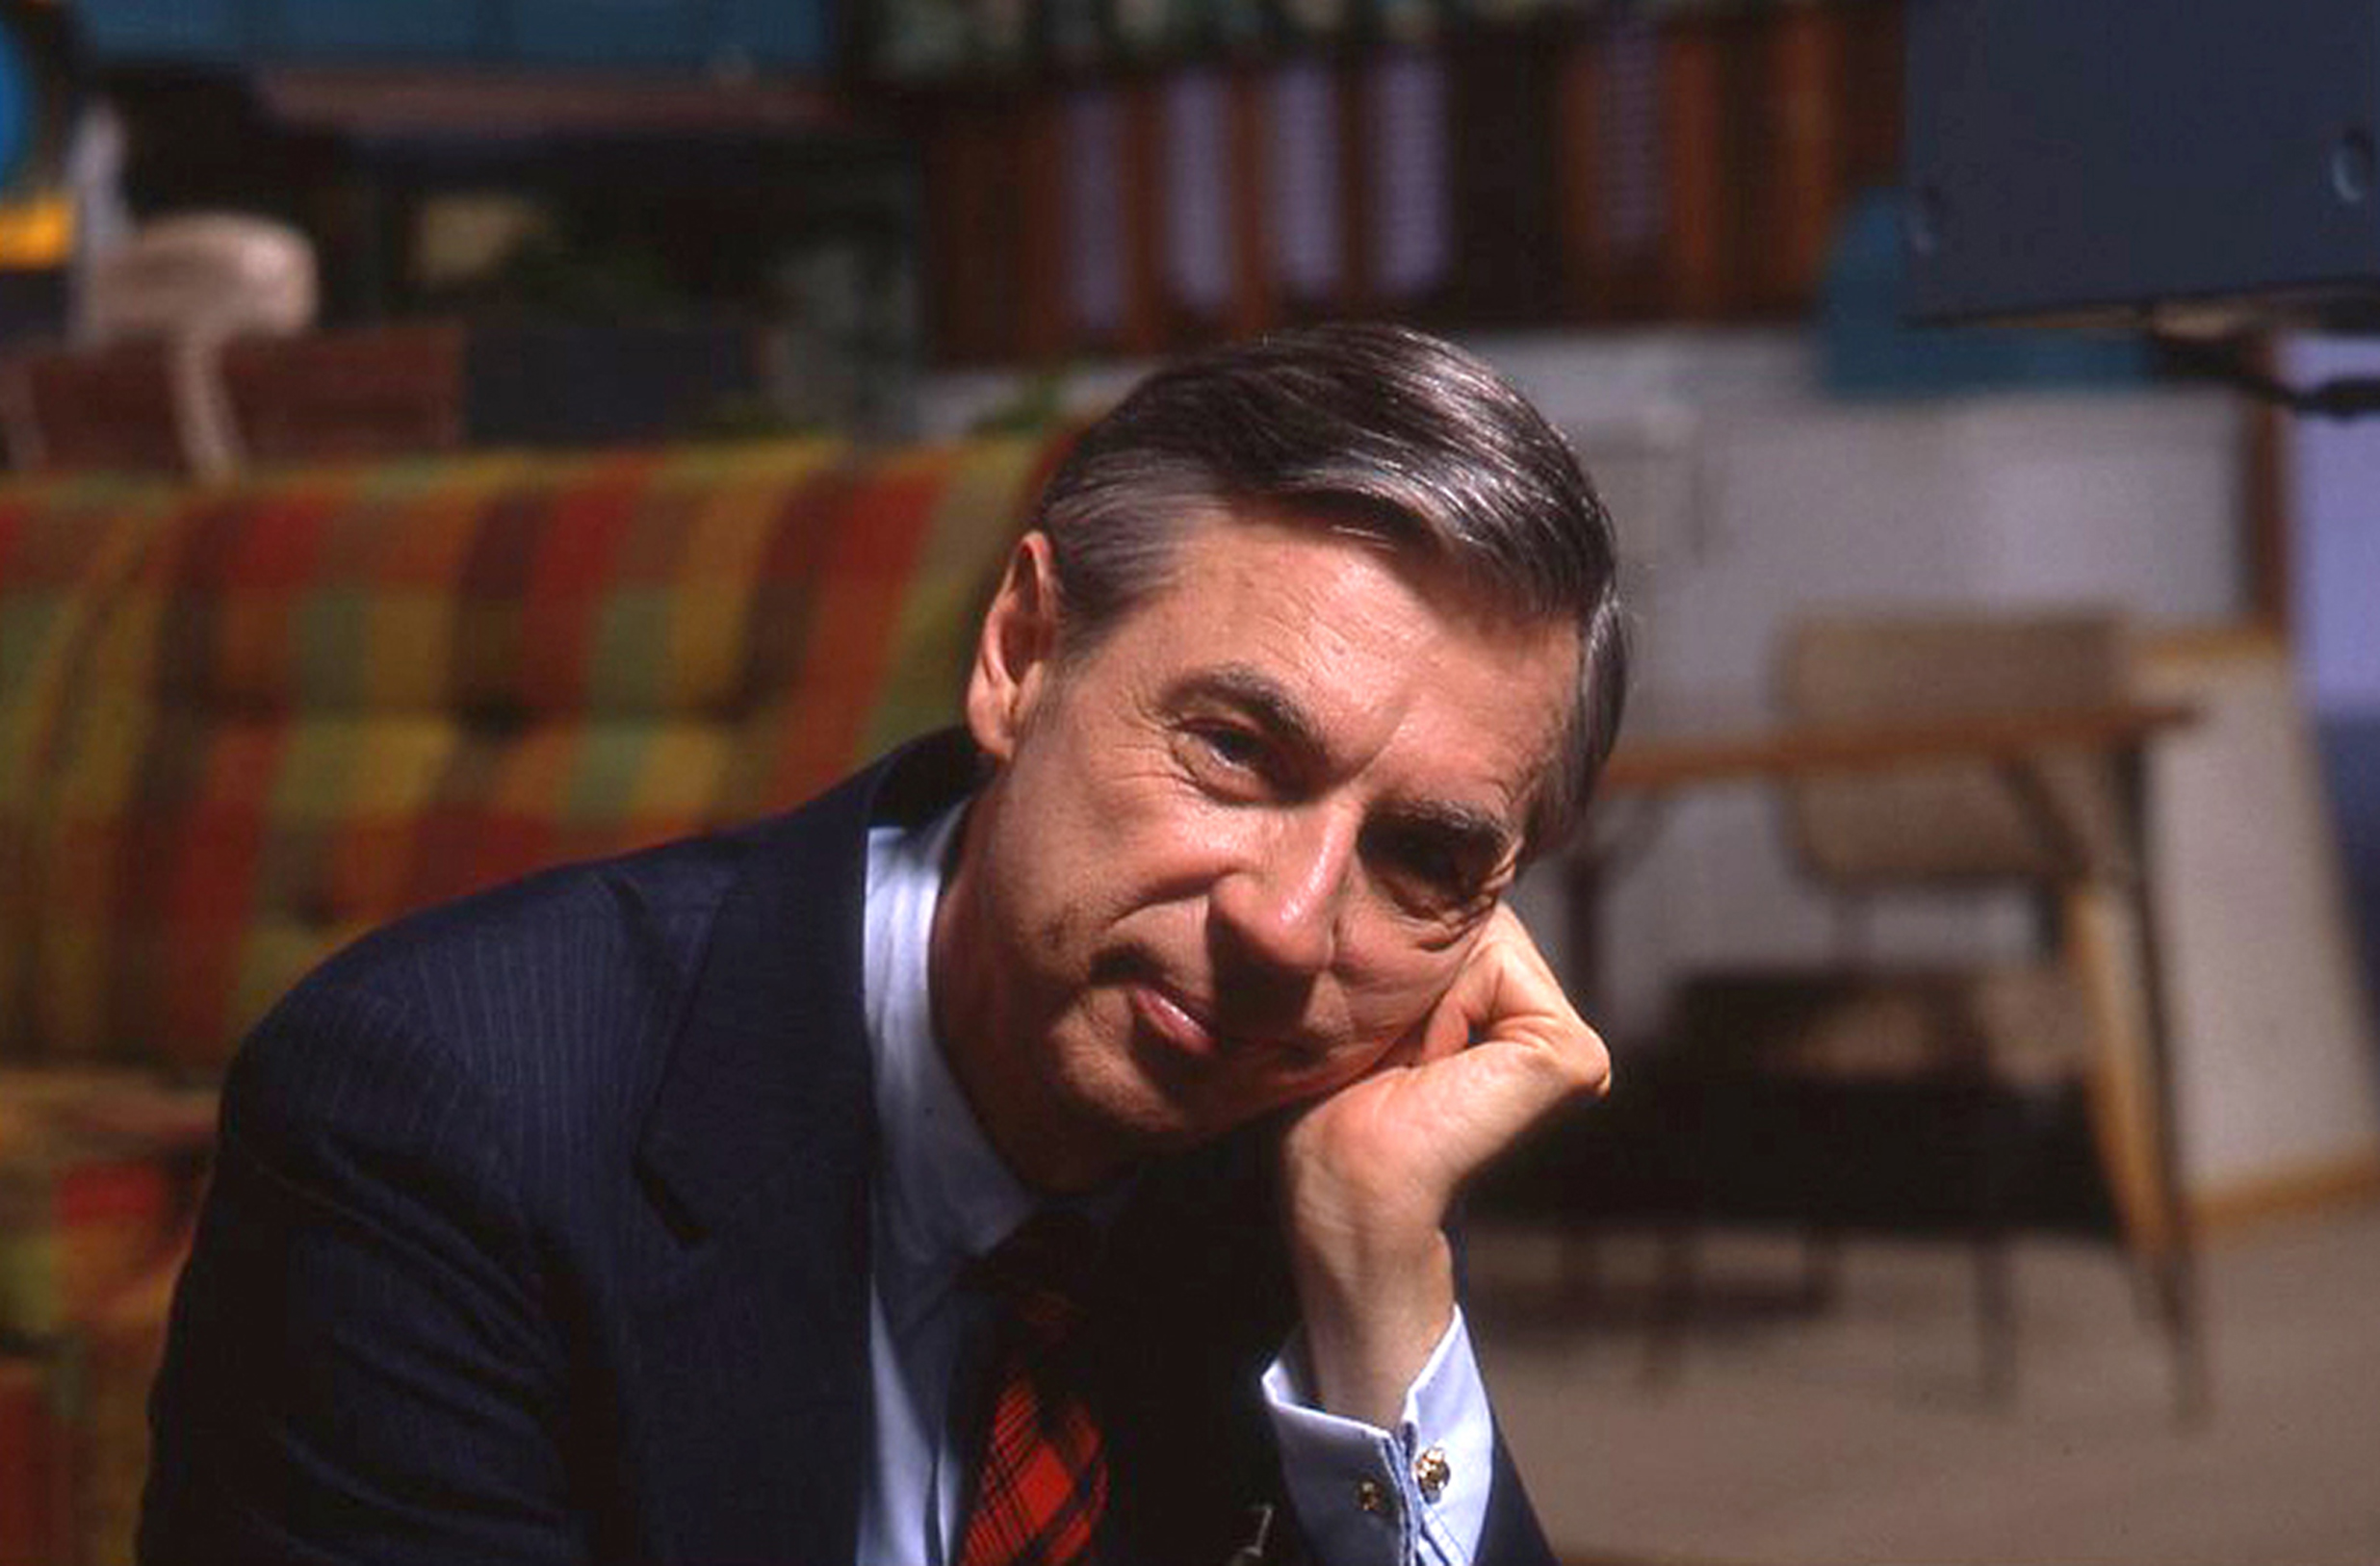 Won T You Be My Neighbor Is An Invitation Not To Be Passed Up The Boston Globe